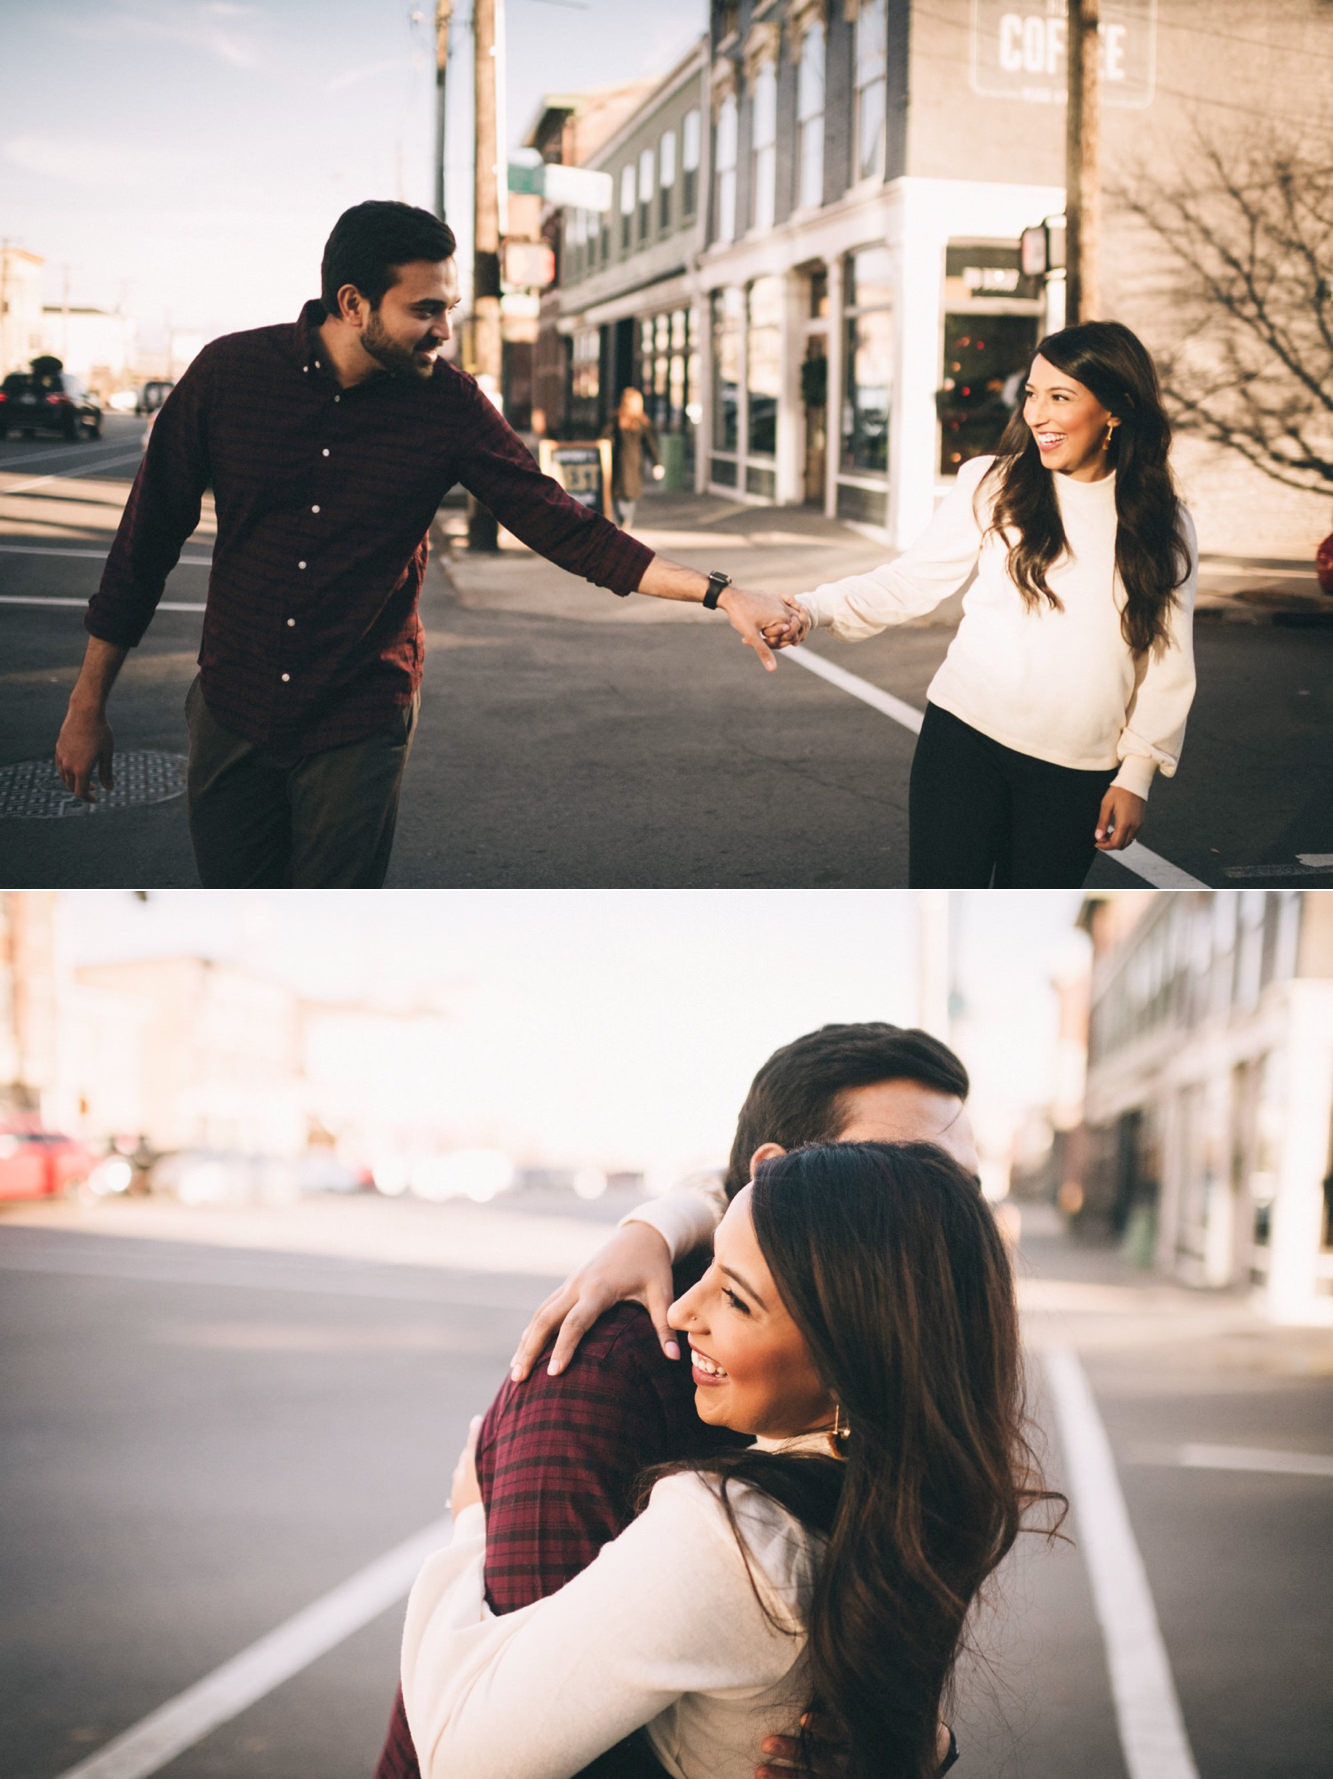 Nulu-Winter-Engagement-Session-By-Kentucky-Wedding-Photographer-Sarah-Katherine-Davis-Photography-4.jpg